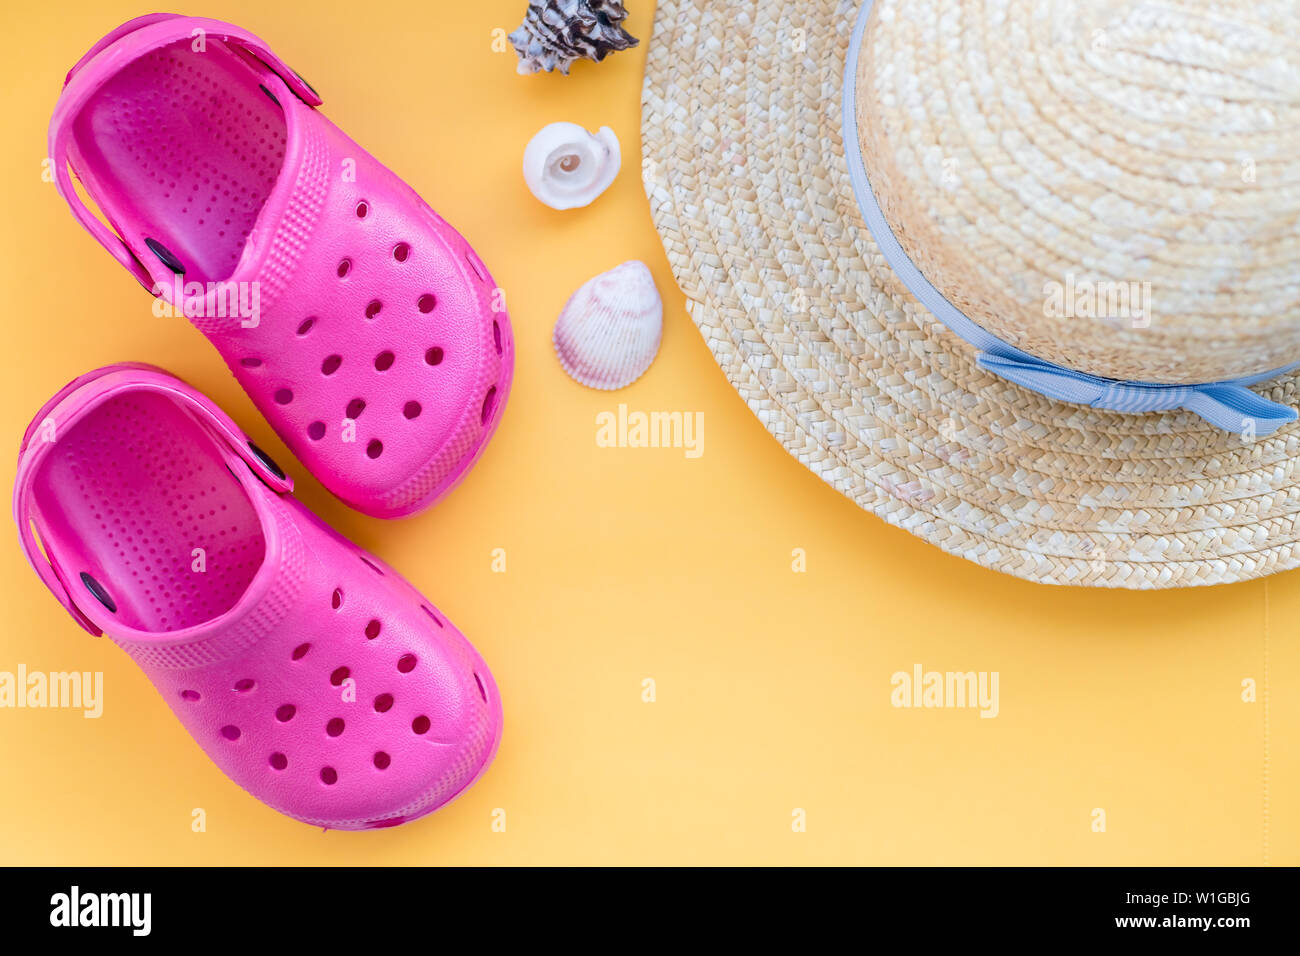 San Diego, USA,May 10, 2019. Flat lay composition with beach shoes, hat, seashells and space for text on yellow background.sandals with seashell - Stock Image